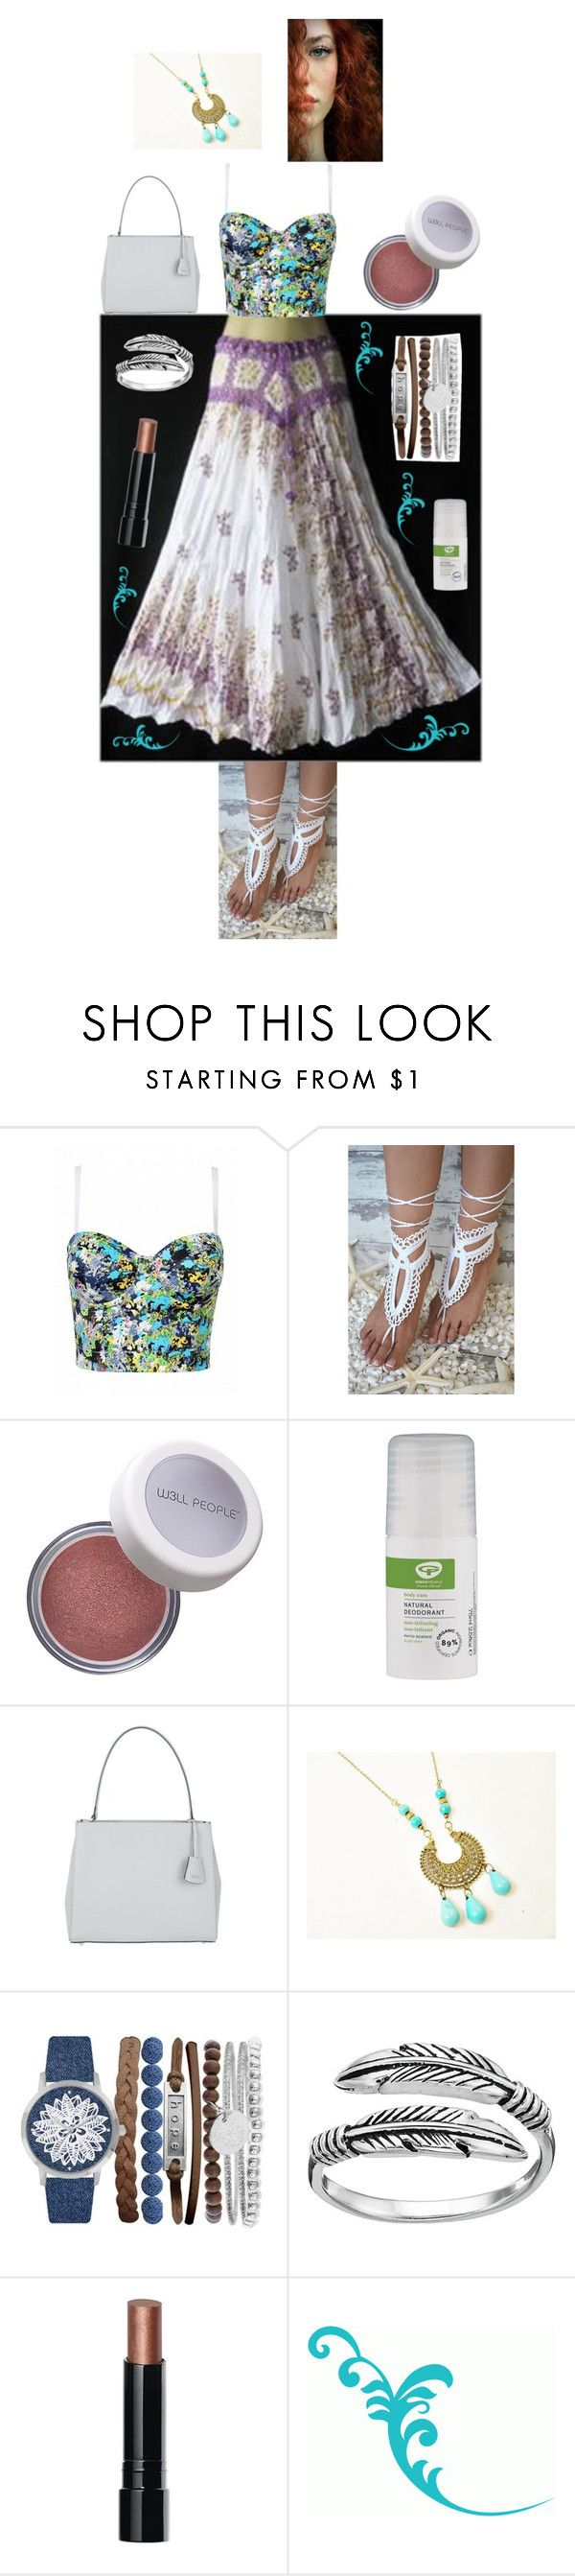 """Boho babe"" by brooklynjadetoni ❤ liked on Polyvore featuring W3LL People, Green People, Abro, Jessica Carlyle, Primrose and Bobbi Brown Cosmetics"